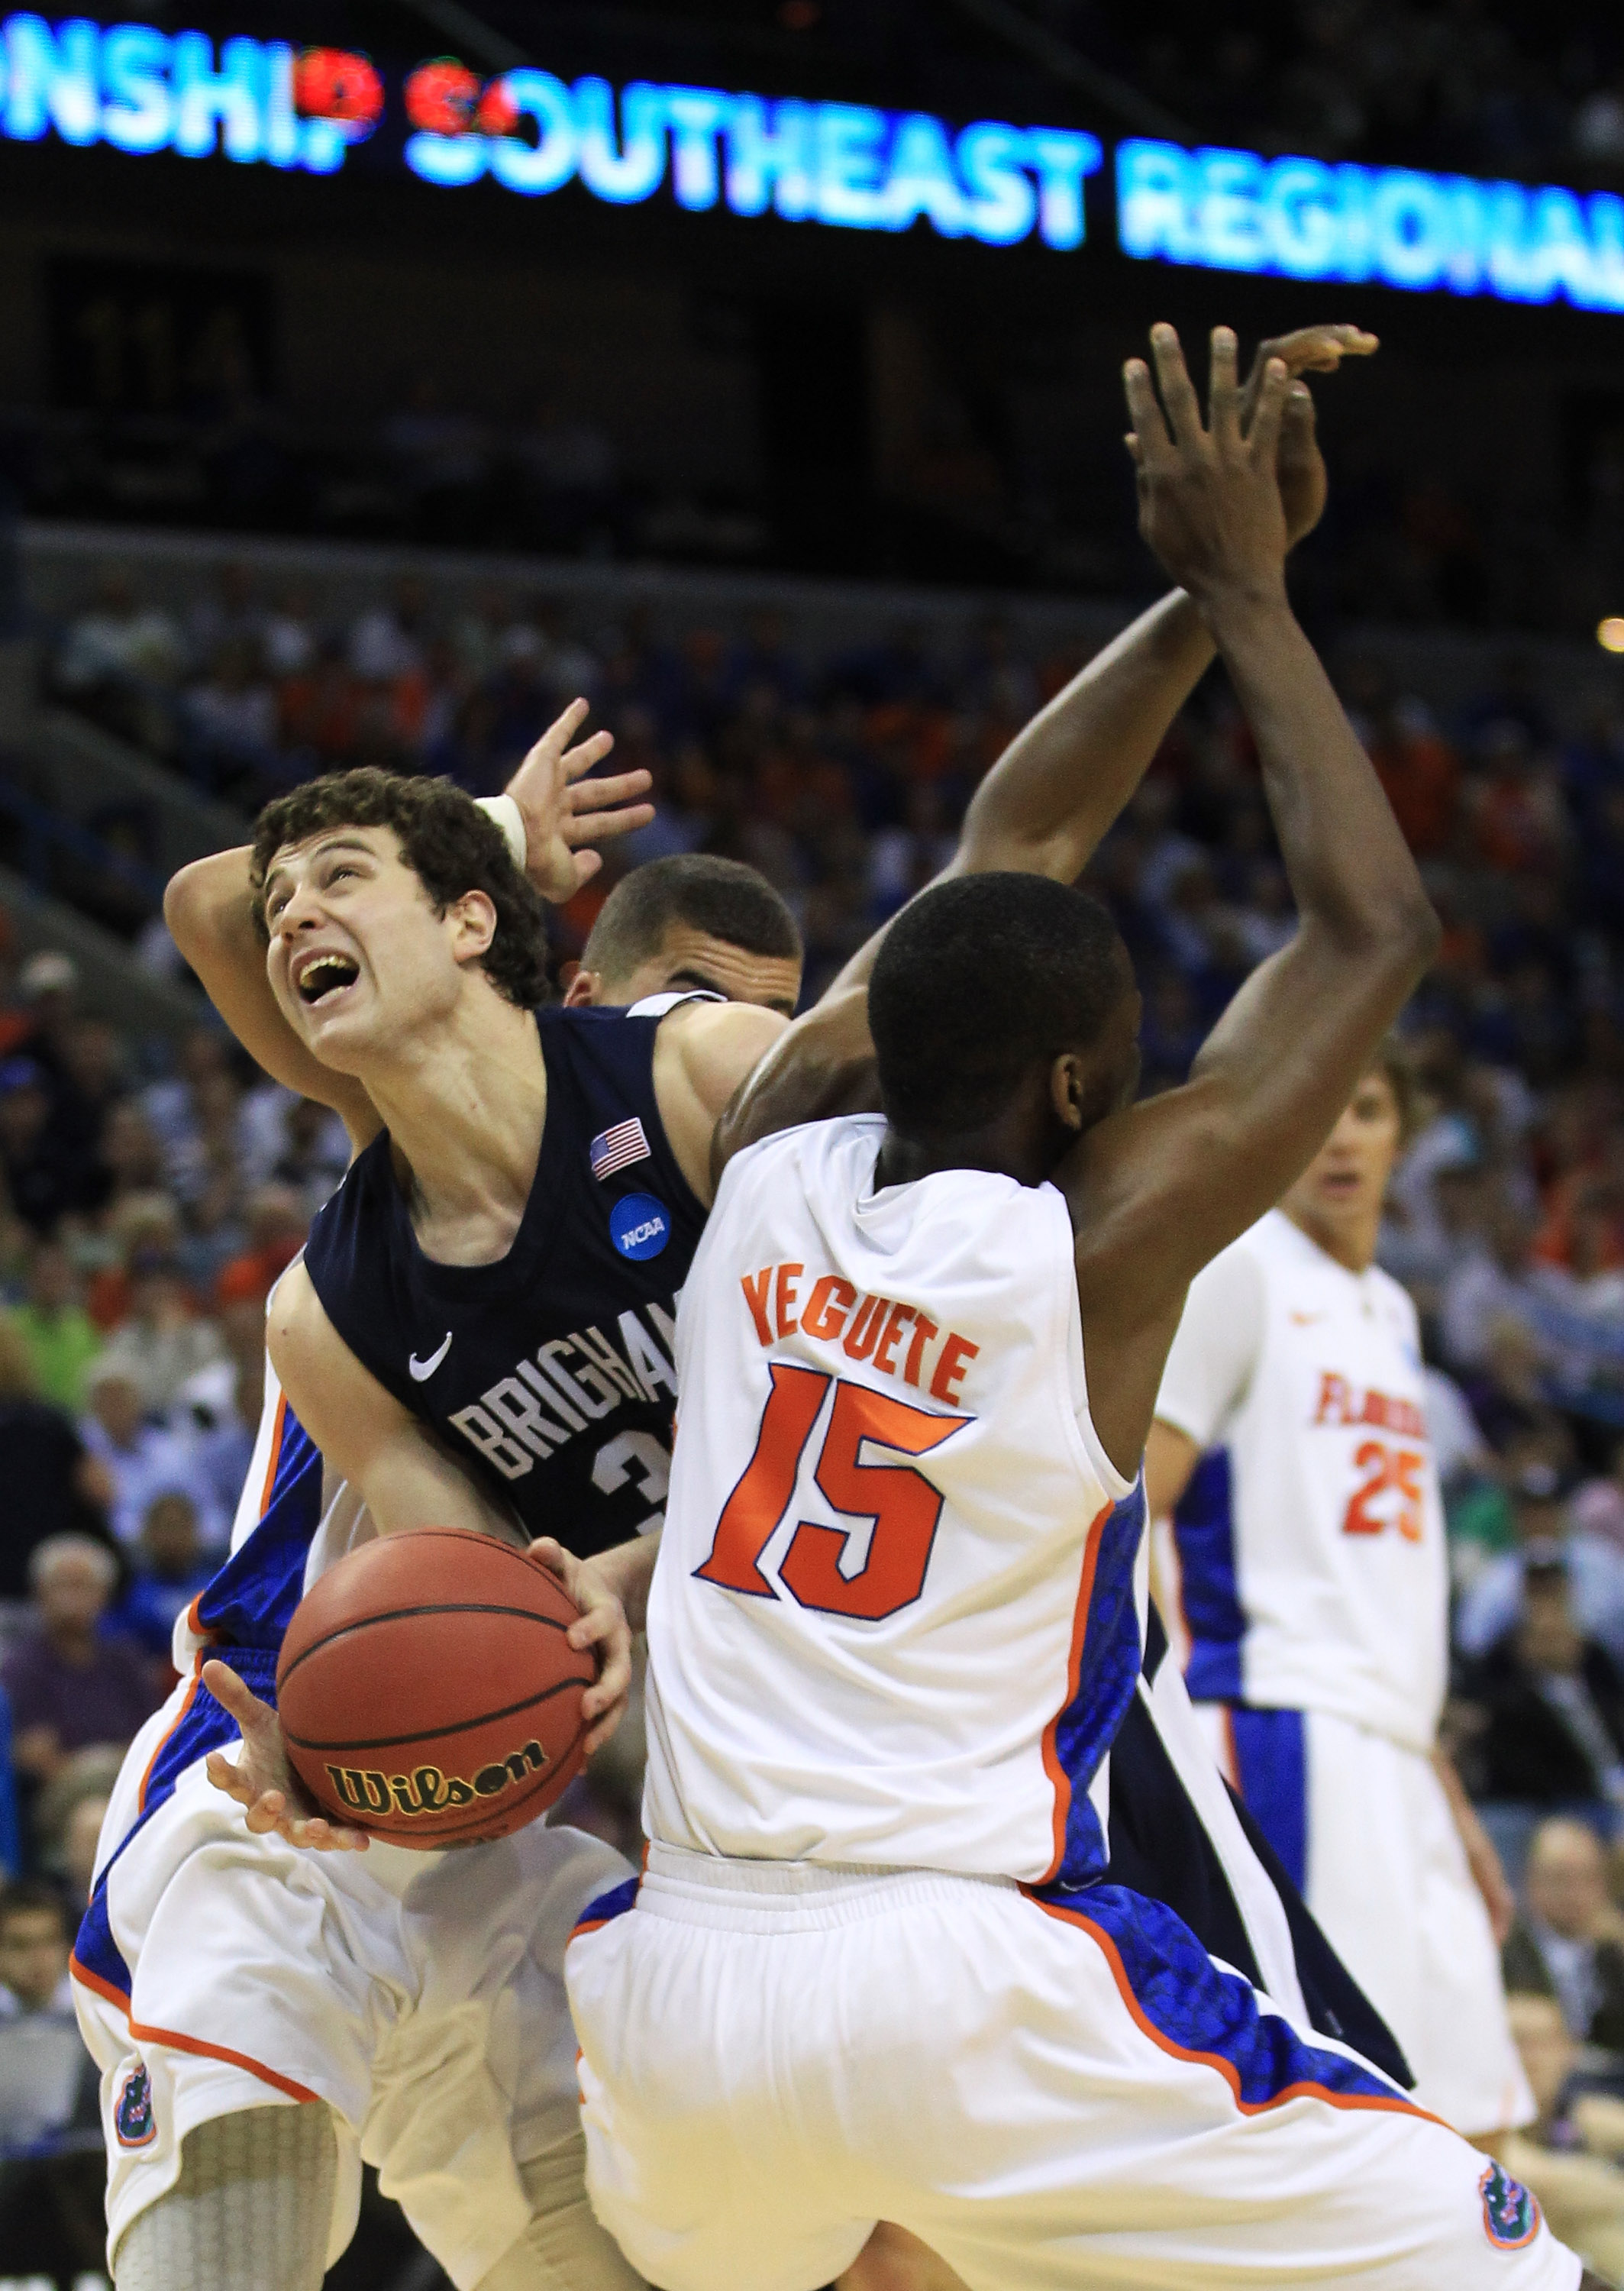 NEW ORLEANS, LA - MARCH 24:  Jimmer Fredette #32 of the Brigham Young Cougars is blocked Brigham Young Cougars Scottie Wilbekin #5 and Will Yeguete #15 of the Florida Gators in the second half during the Southeast regional of the 2011 NCAA men's basketbal